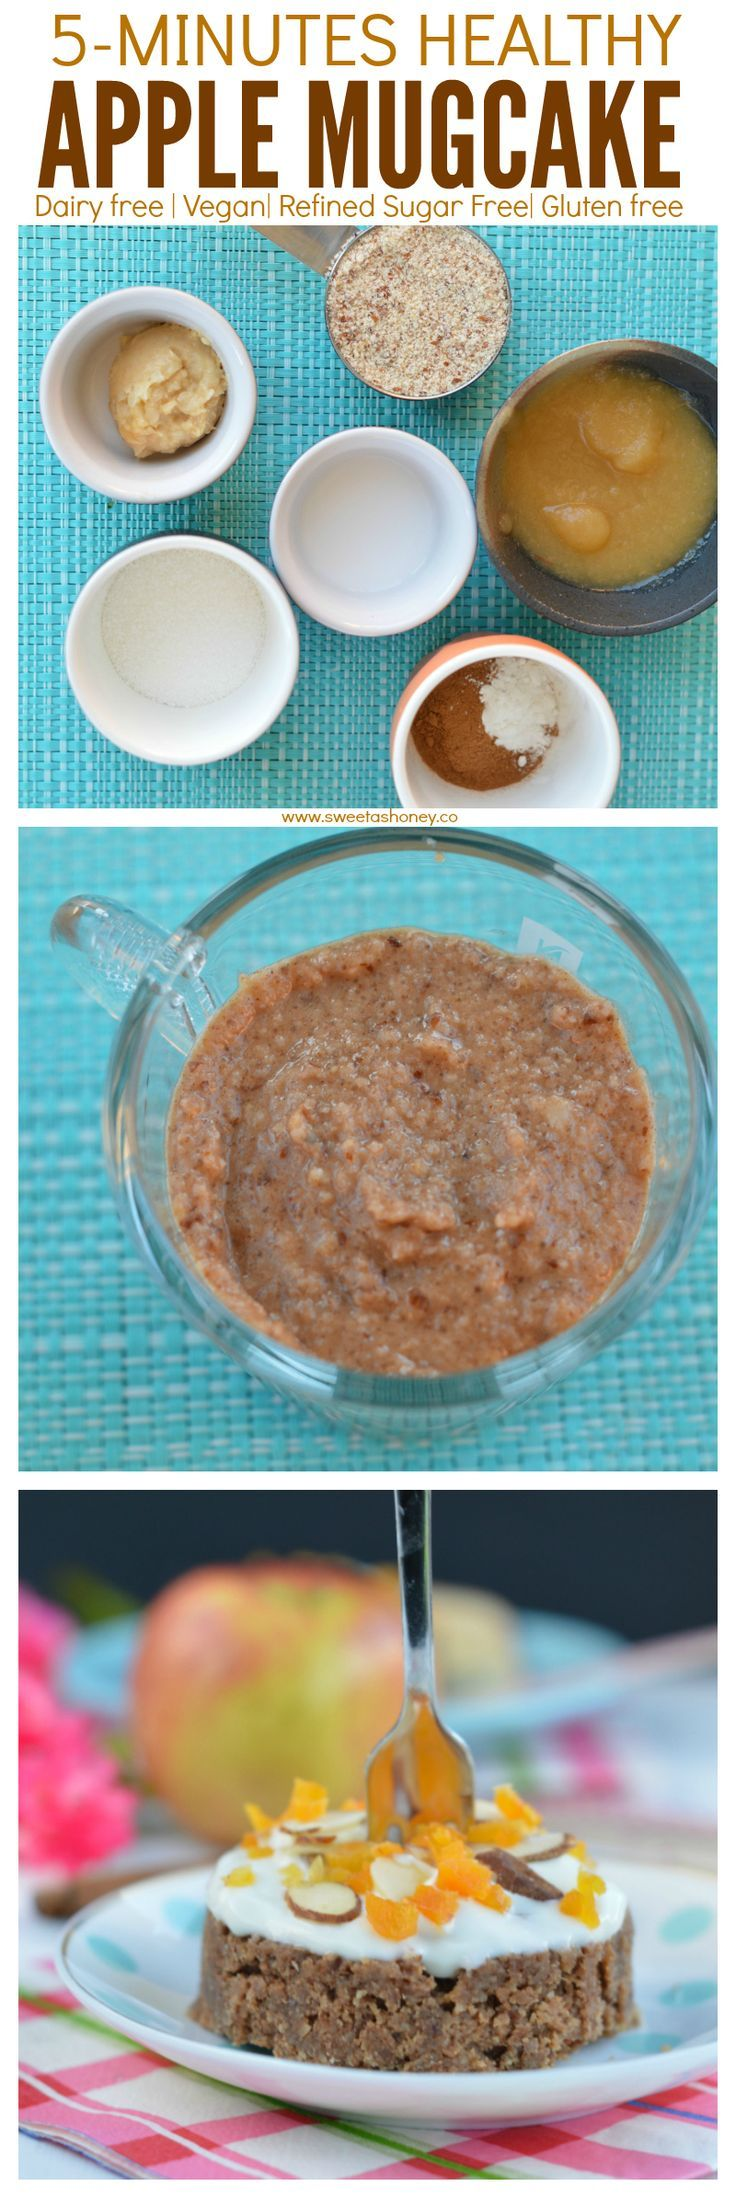 NO processed ingredients Here. Only natural goodness for an healthy 5 minutes Apple Mug cake that taste like Cinnamon Roll ! Vegan Mug Cake.